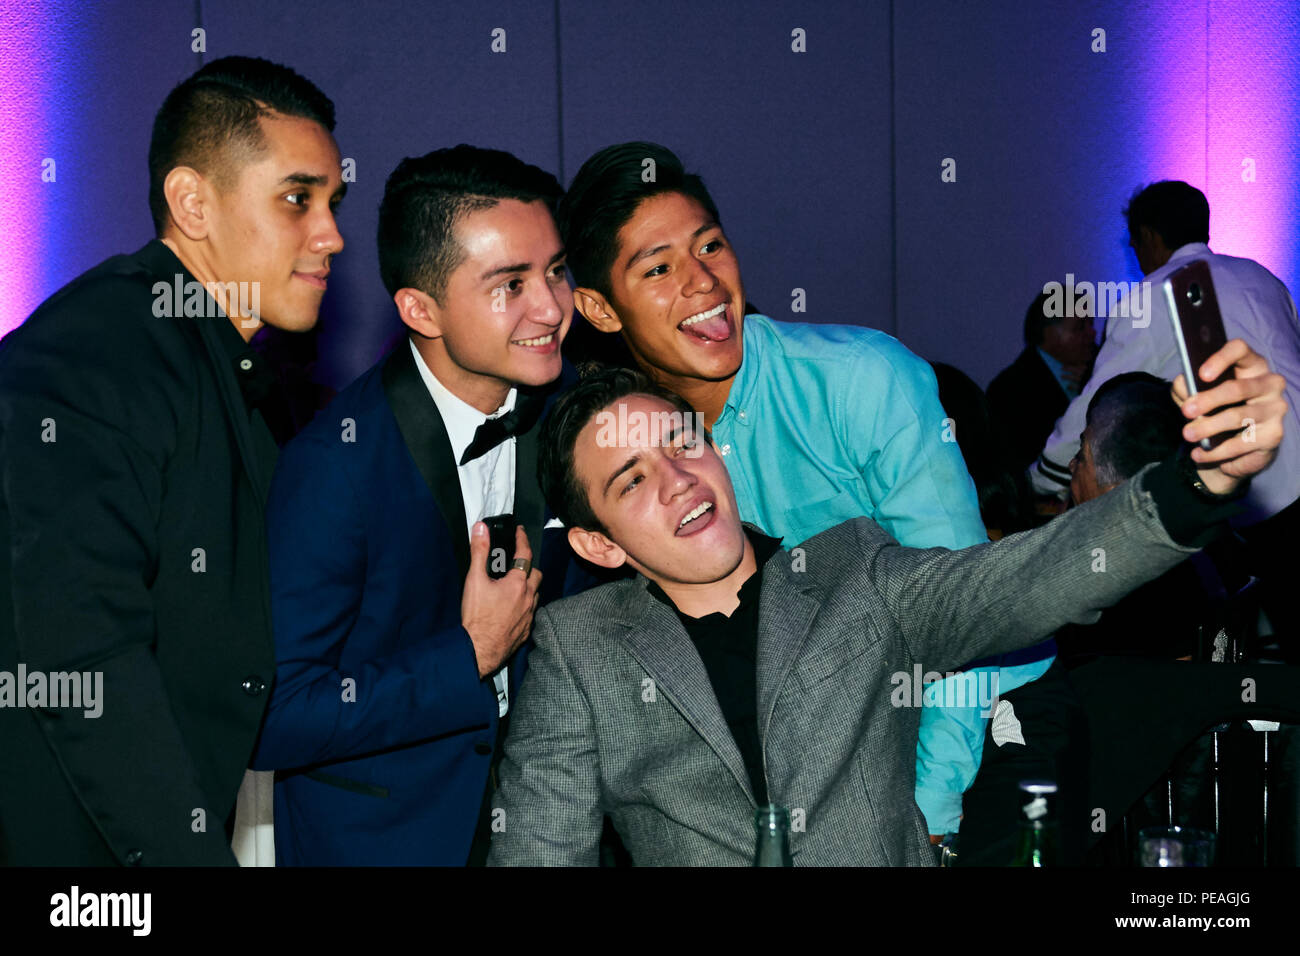 MERIDA, YUC/MEXICO - AUG 25, 2017: Portrait of a group of young men taking a selfie at their university's graduating party - Stock Image